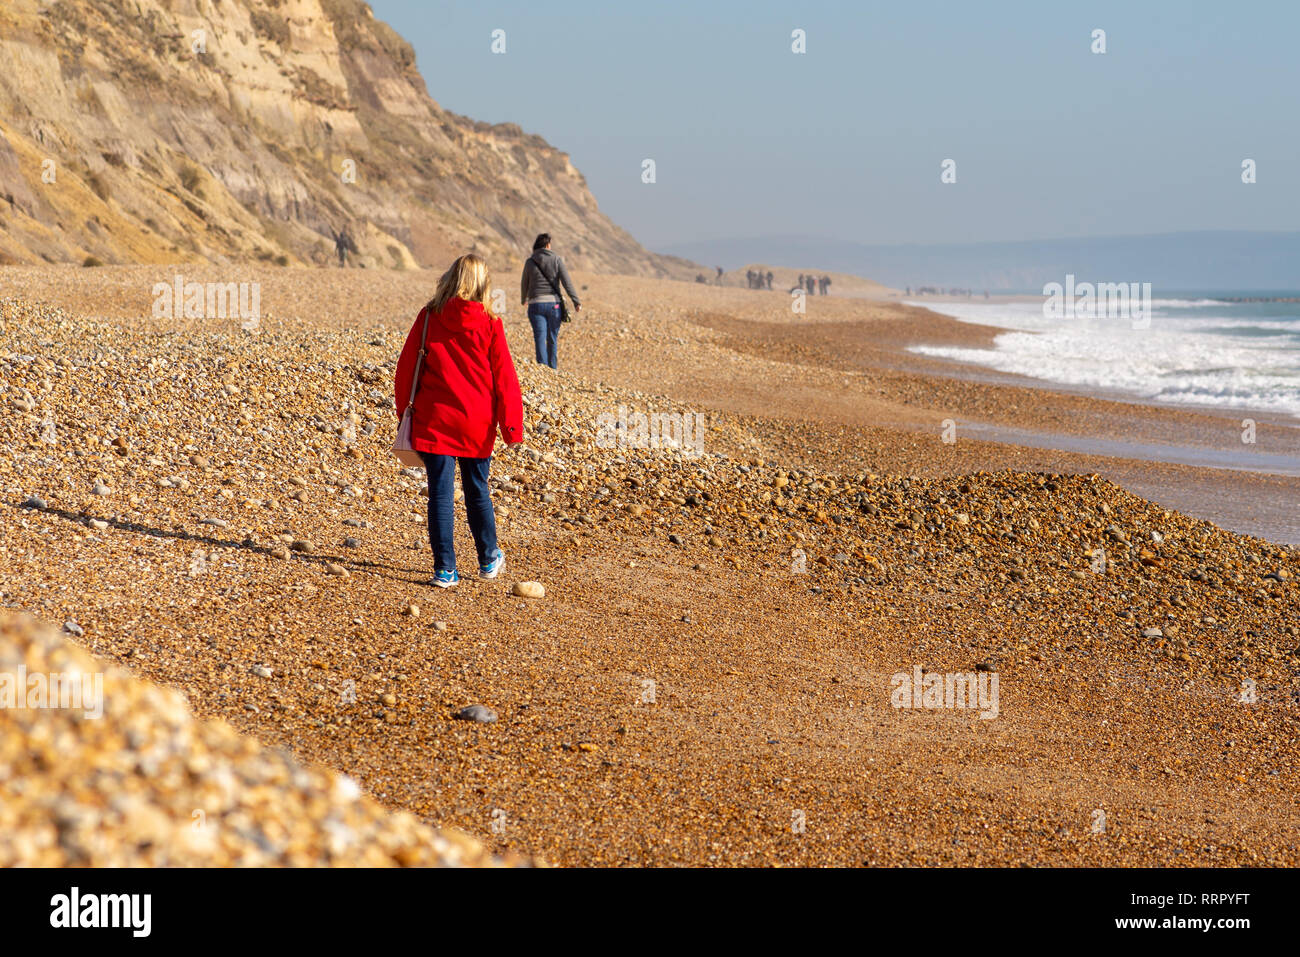 Hengistbury Head, Christchurch, Dorset, UK, 26th February 2019, Weather: People walk along the pebbly beach of the coastal spit this afternoon in unusually high temperatures for February. Even with an onshore breeze, with warm air coming up from the south, 15 degrees centigrade has been reached in this record breaking spell of winter weather for the UK. Credit: Paul Biggins/Alamy Live News - Stock Image